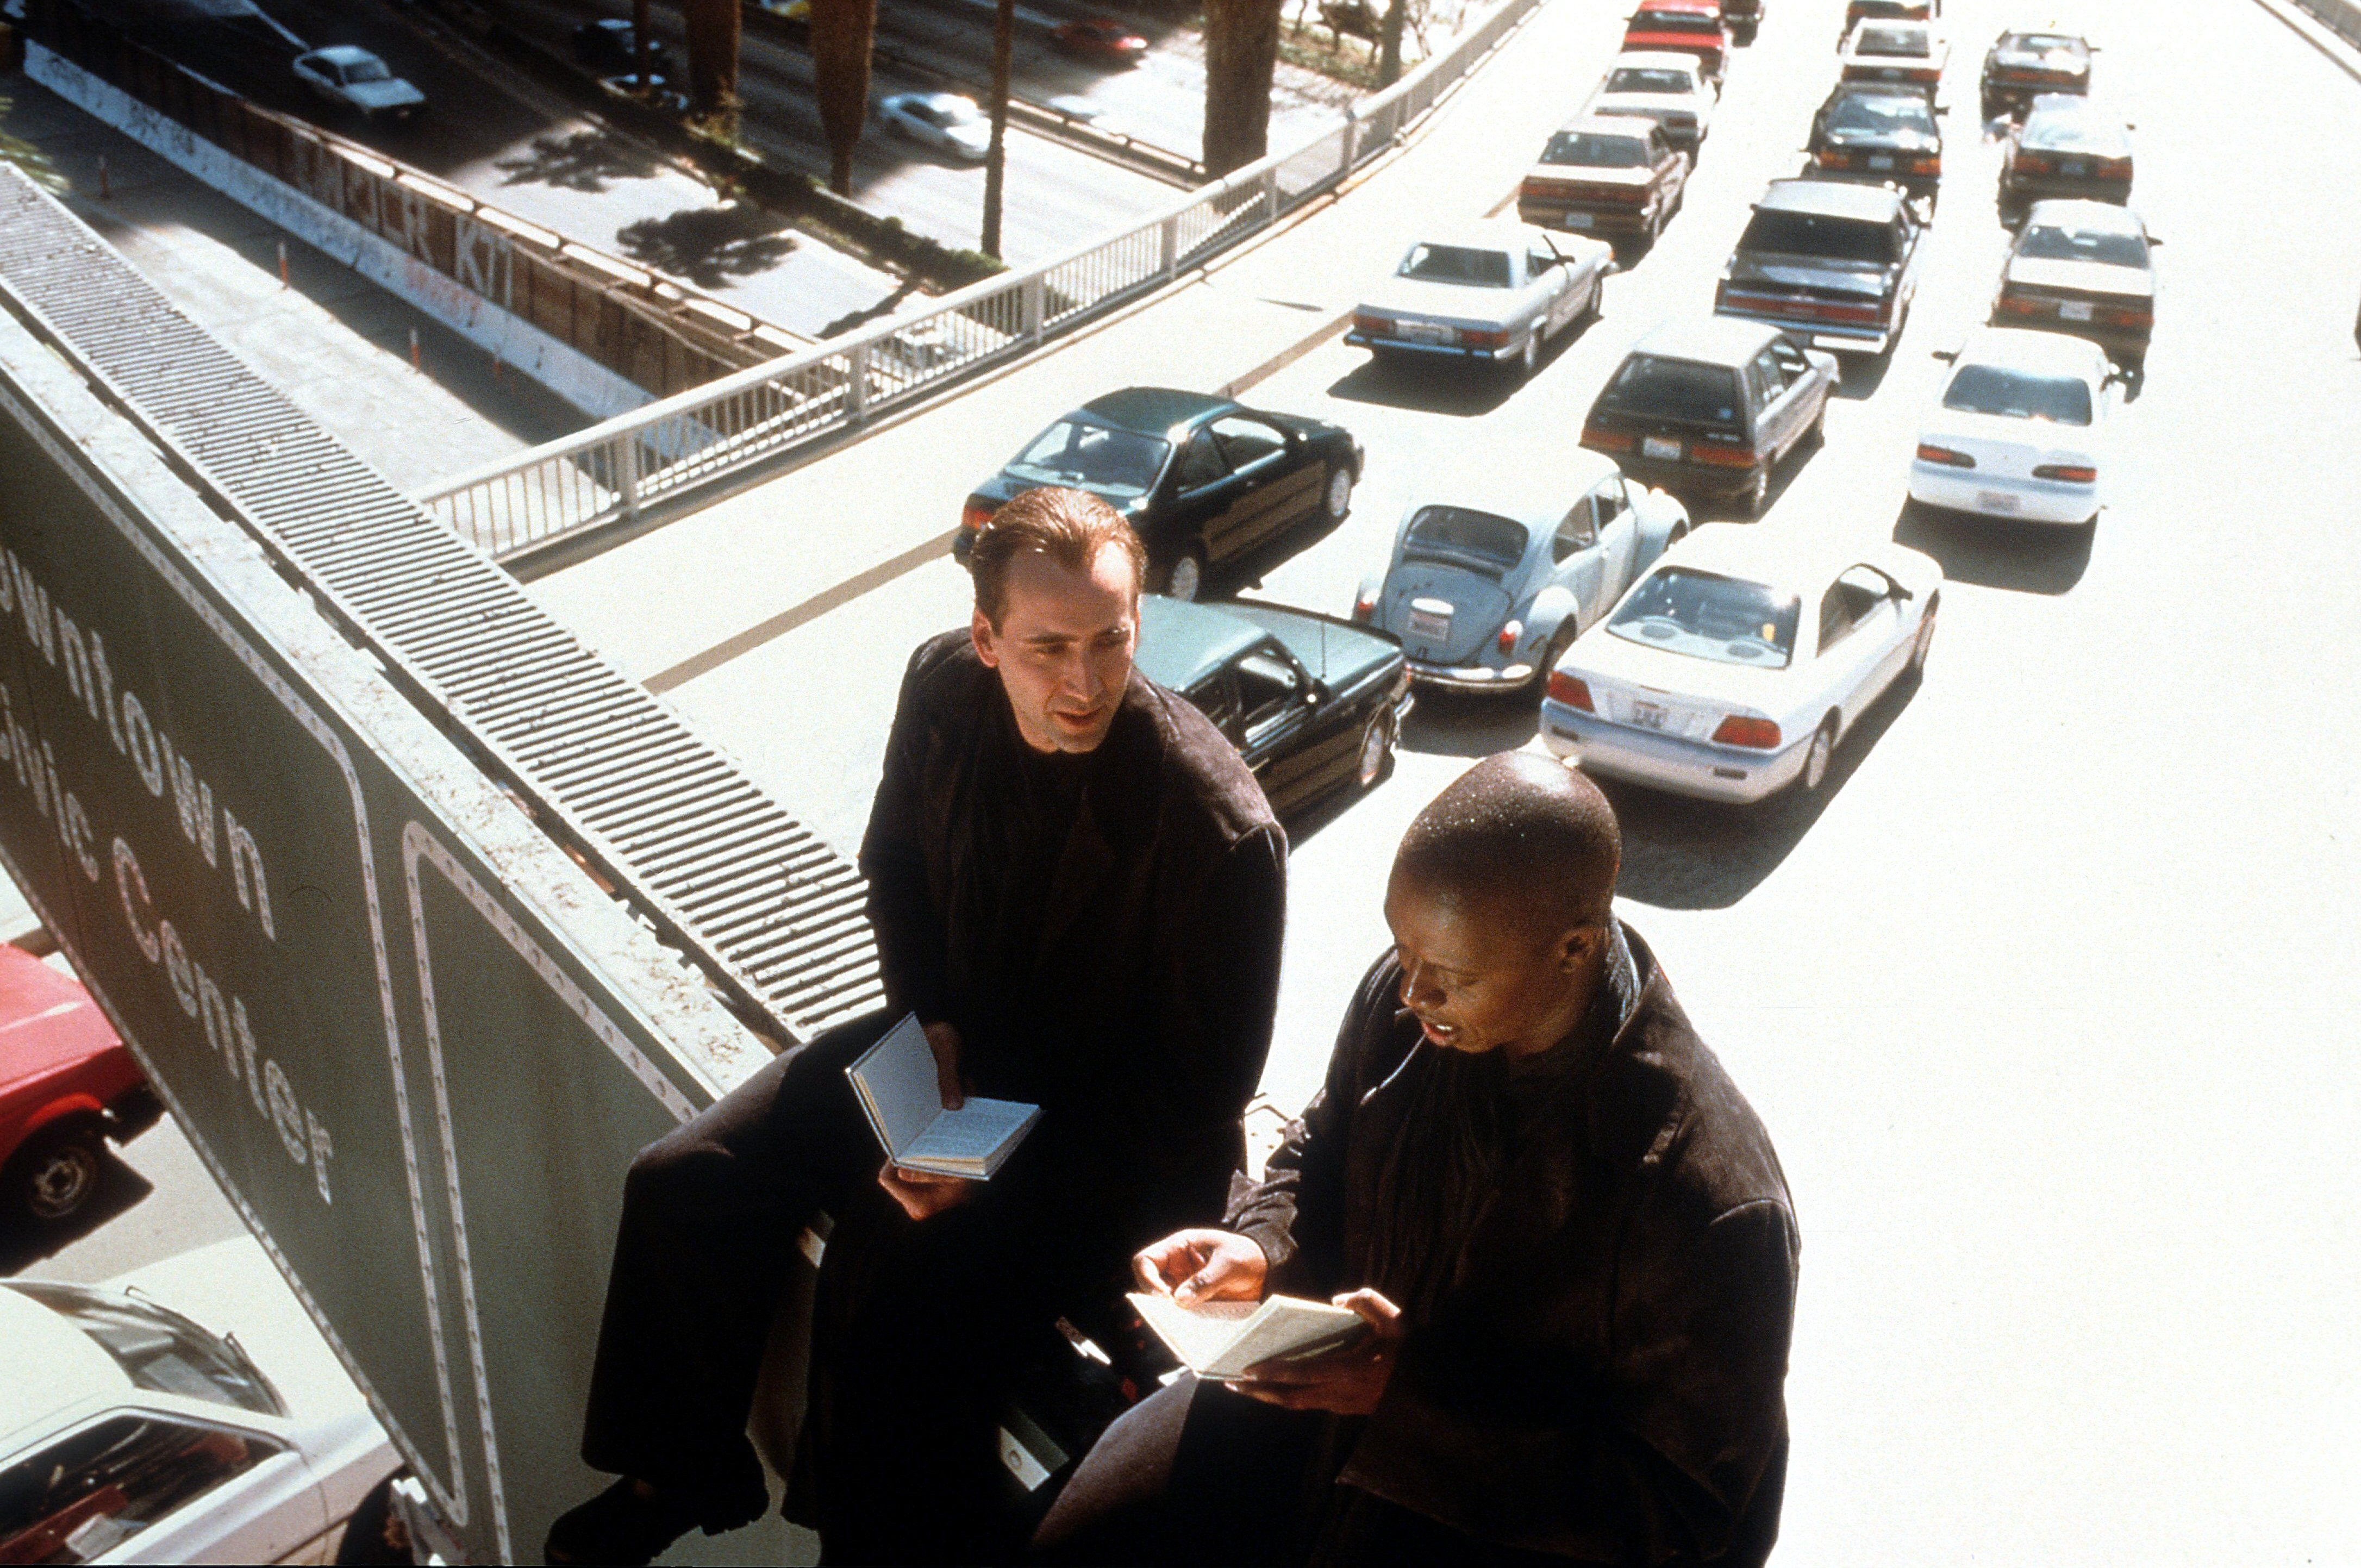 Nicolas Cage and Andre Braugher are sitting on a freeway overpass sign with heavy traffic below them in a scene from the film 'City Of Angels', 1998